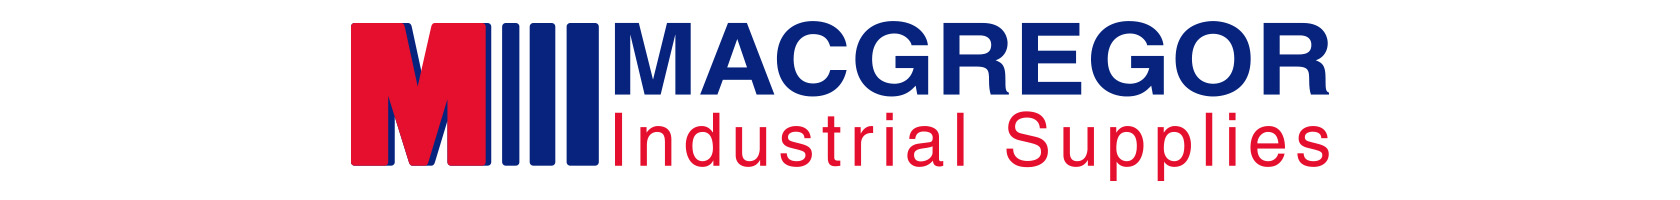 Macgregor Industrial Supplies Ltd Logo